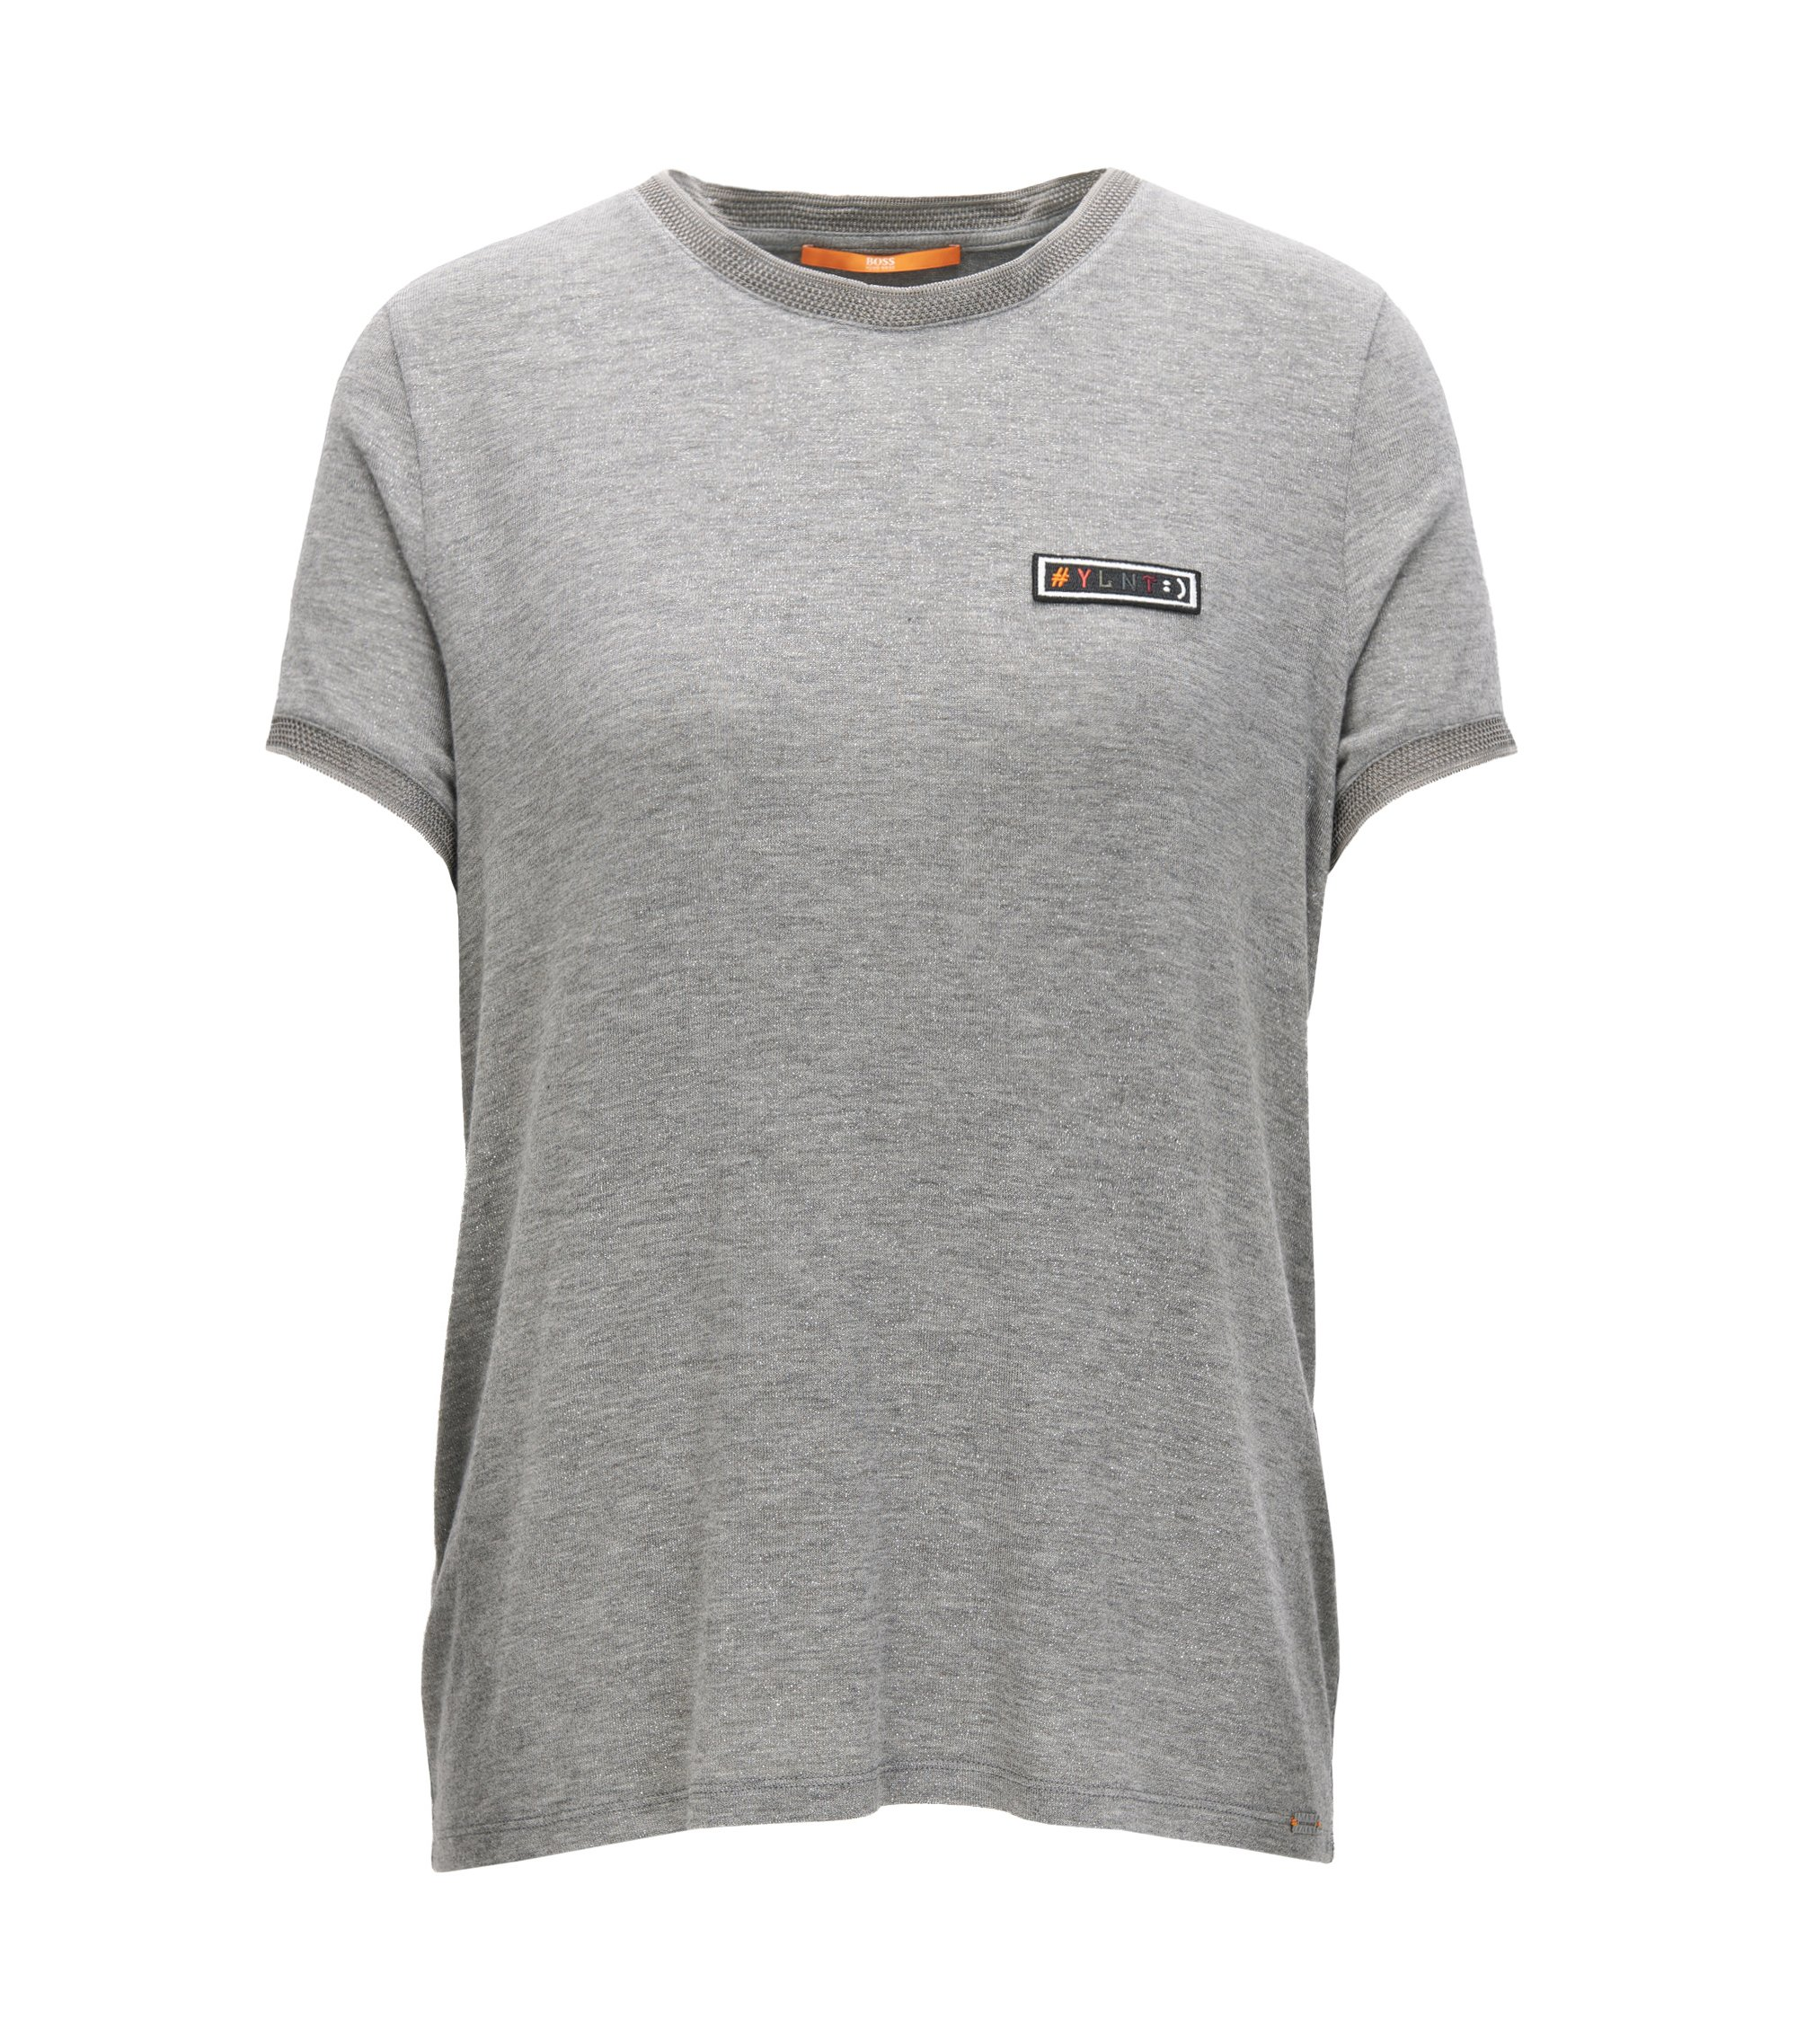 Regular-Fit T-Shirt aus Stretch-Modal mit schimmerndem Finish, Grau